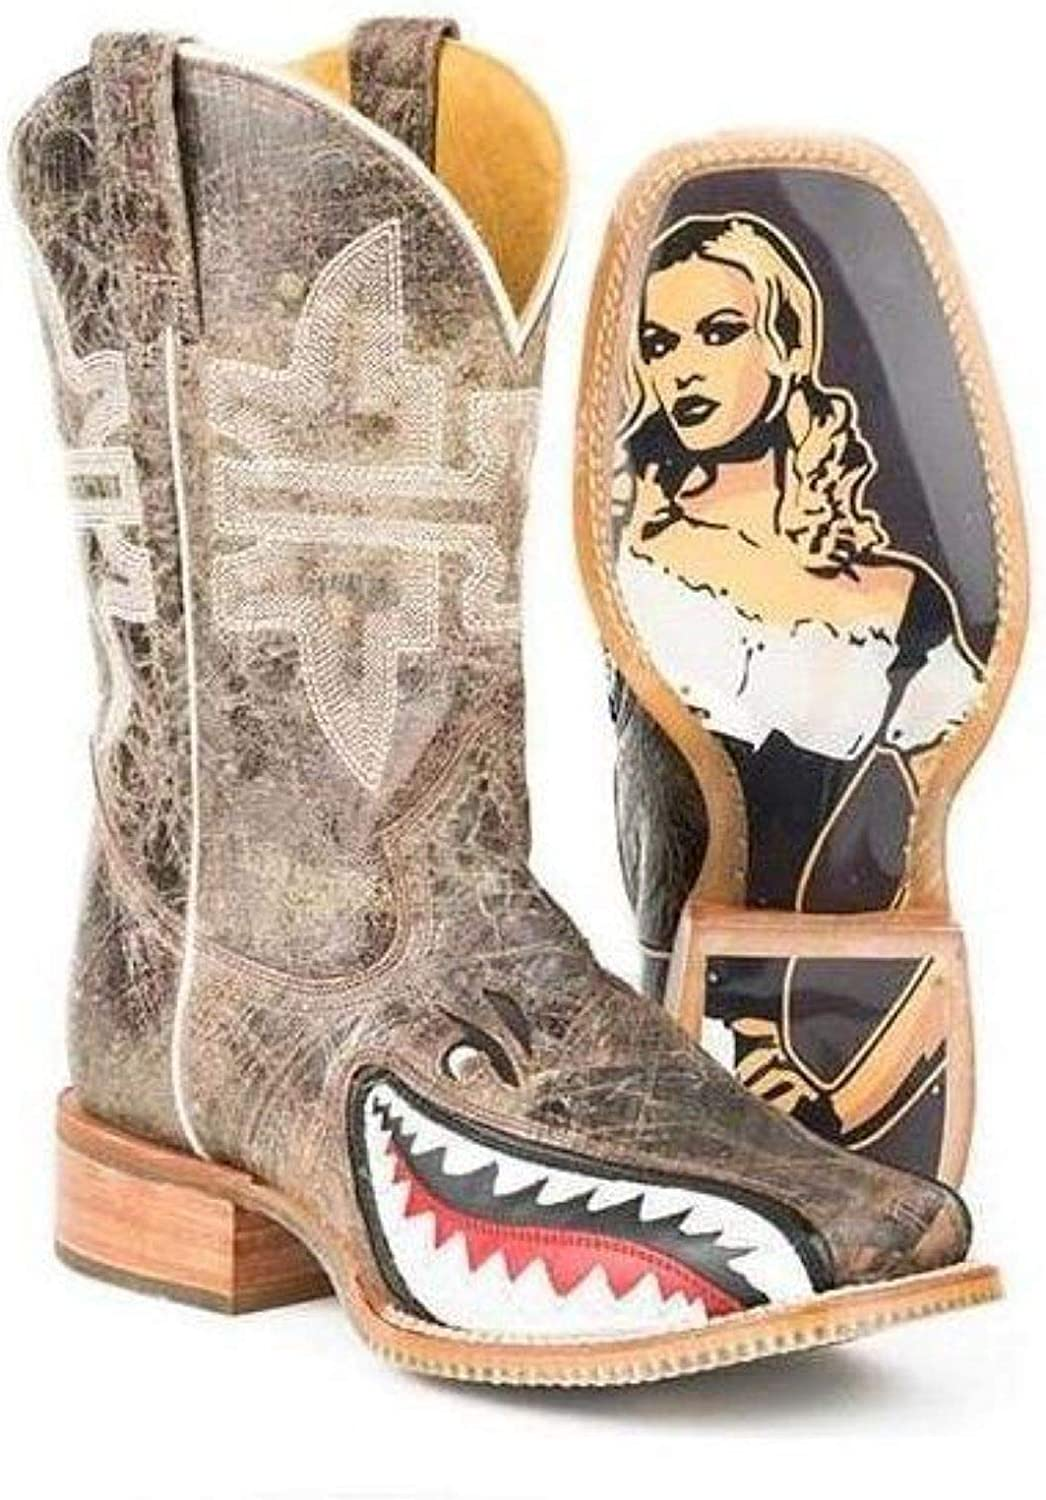 Men's Tin Haul Toastin A Gnarly Shark Boots with Beer Girl Sole